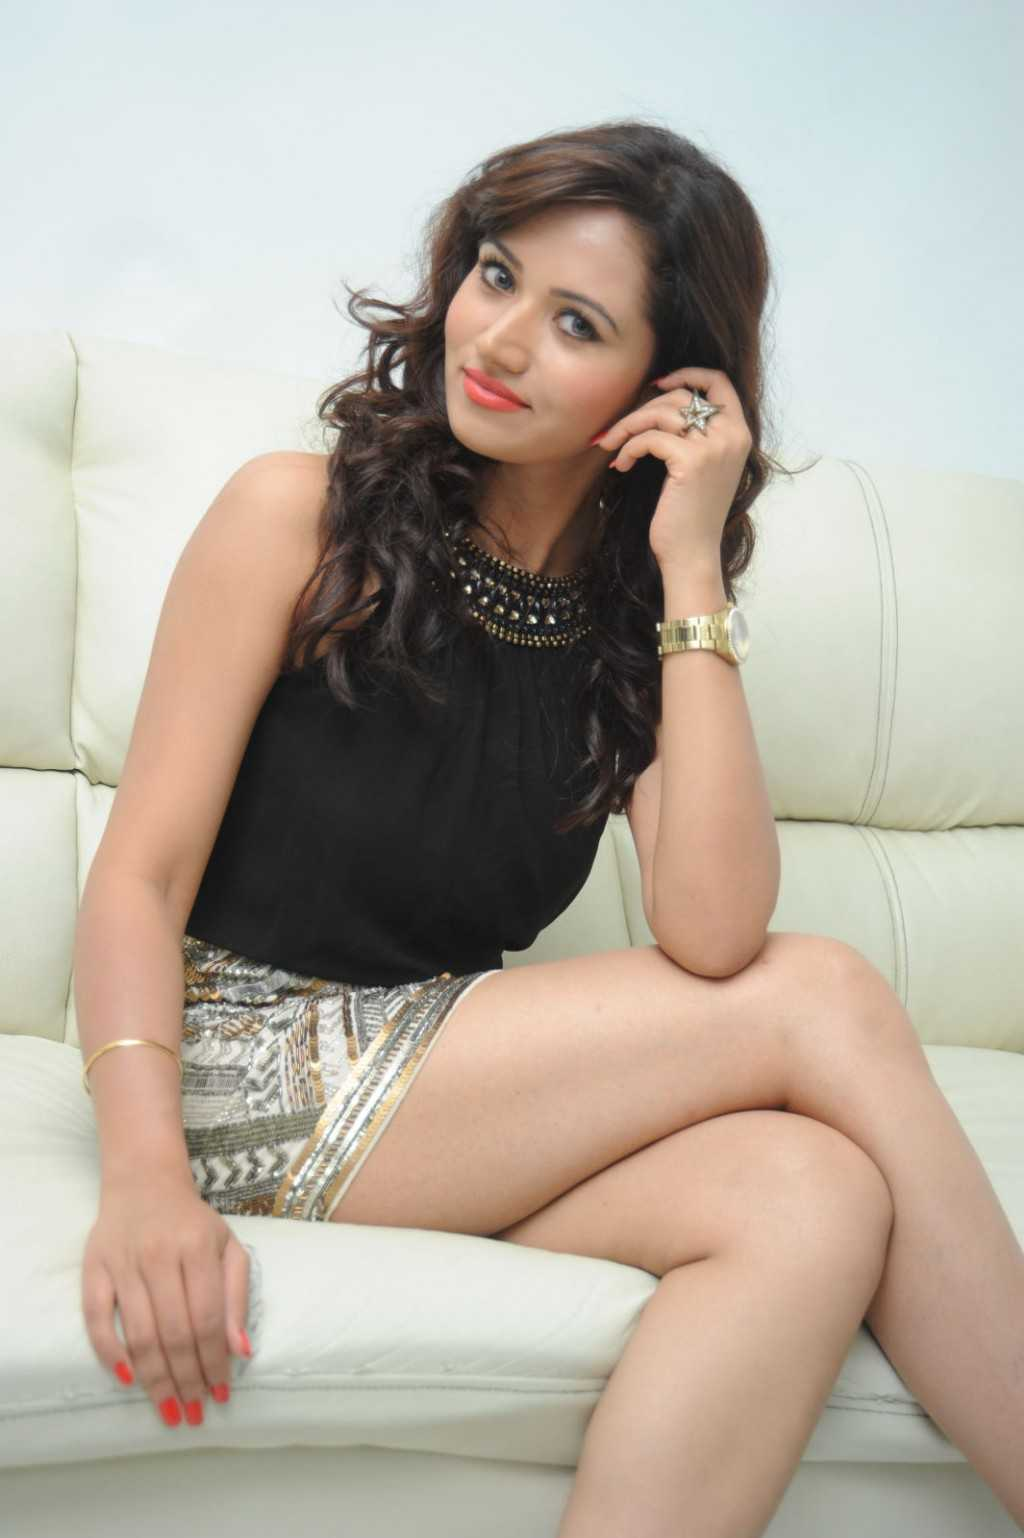 South-Indian-Actress-Preeti-Rana-Hot-Thigh-Show-Photos-2